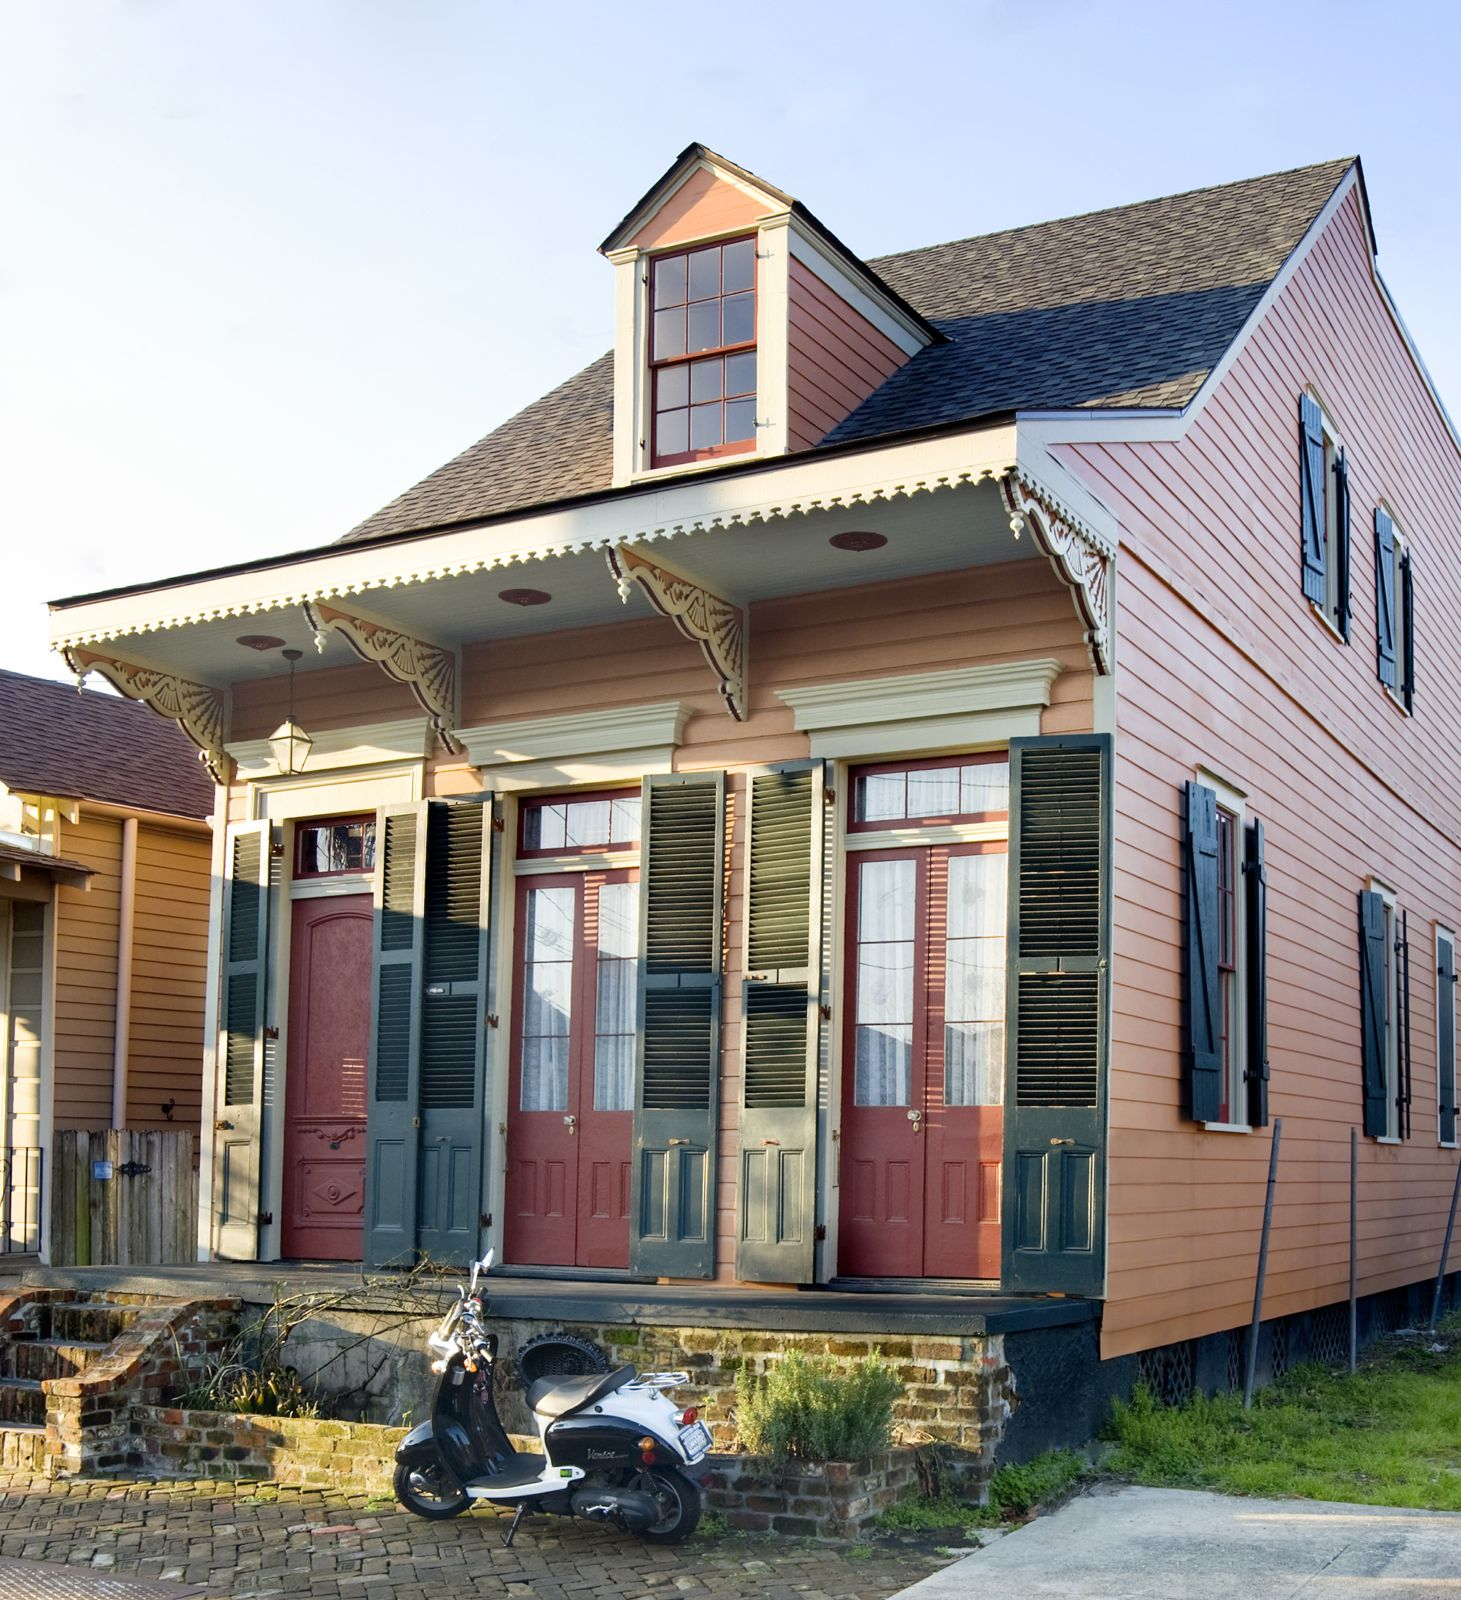 New Orleans Houses: The Creole Cottage